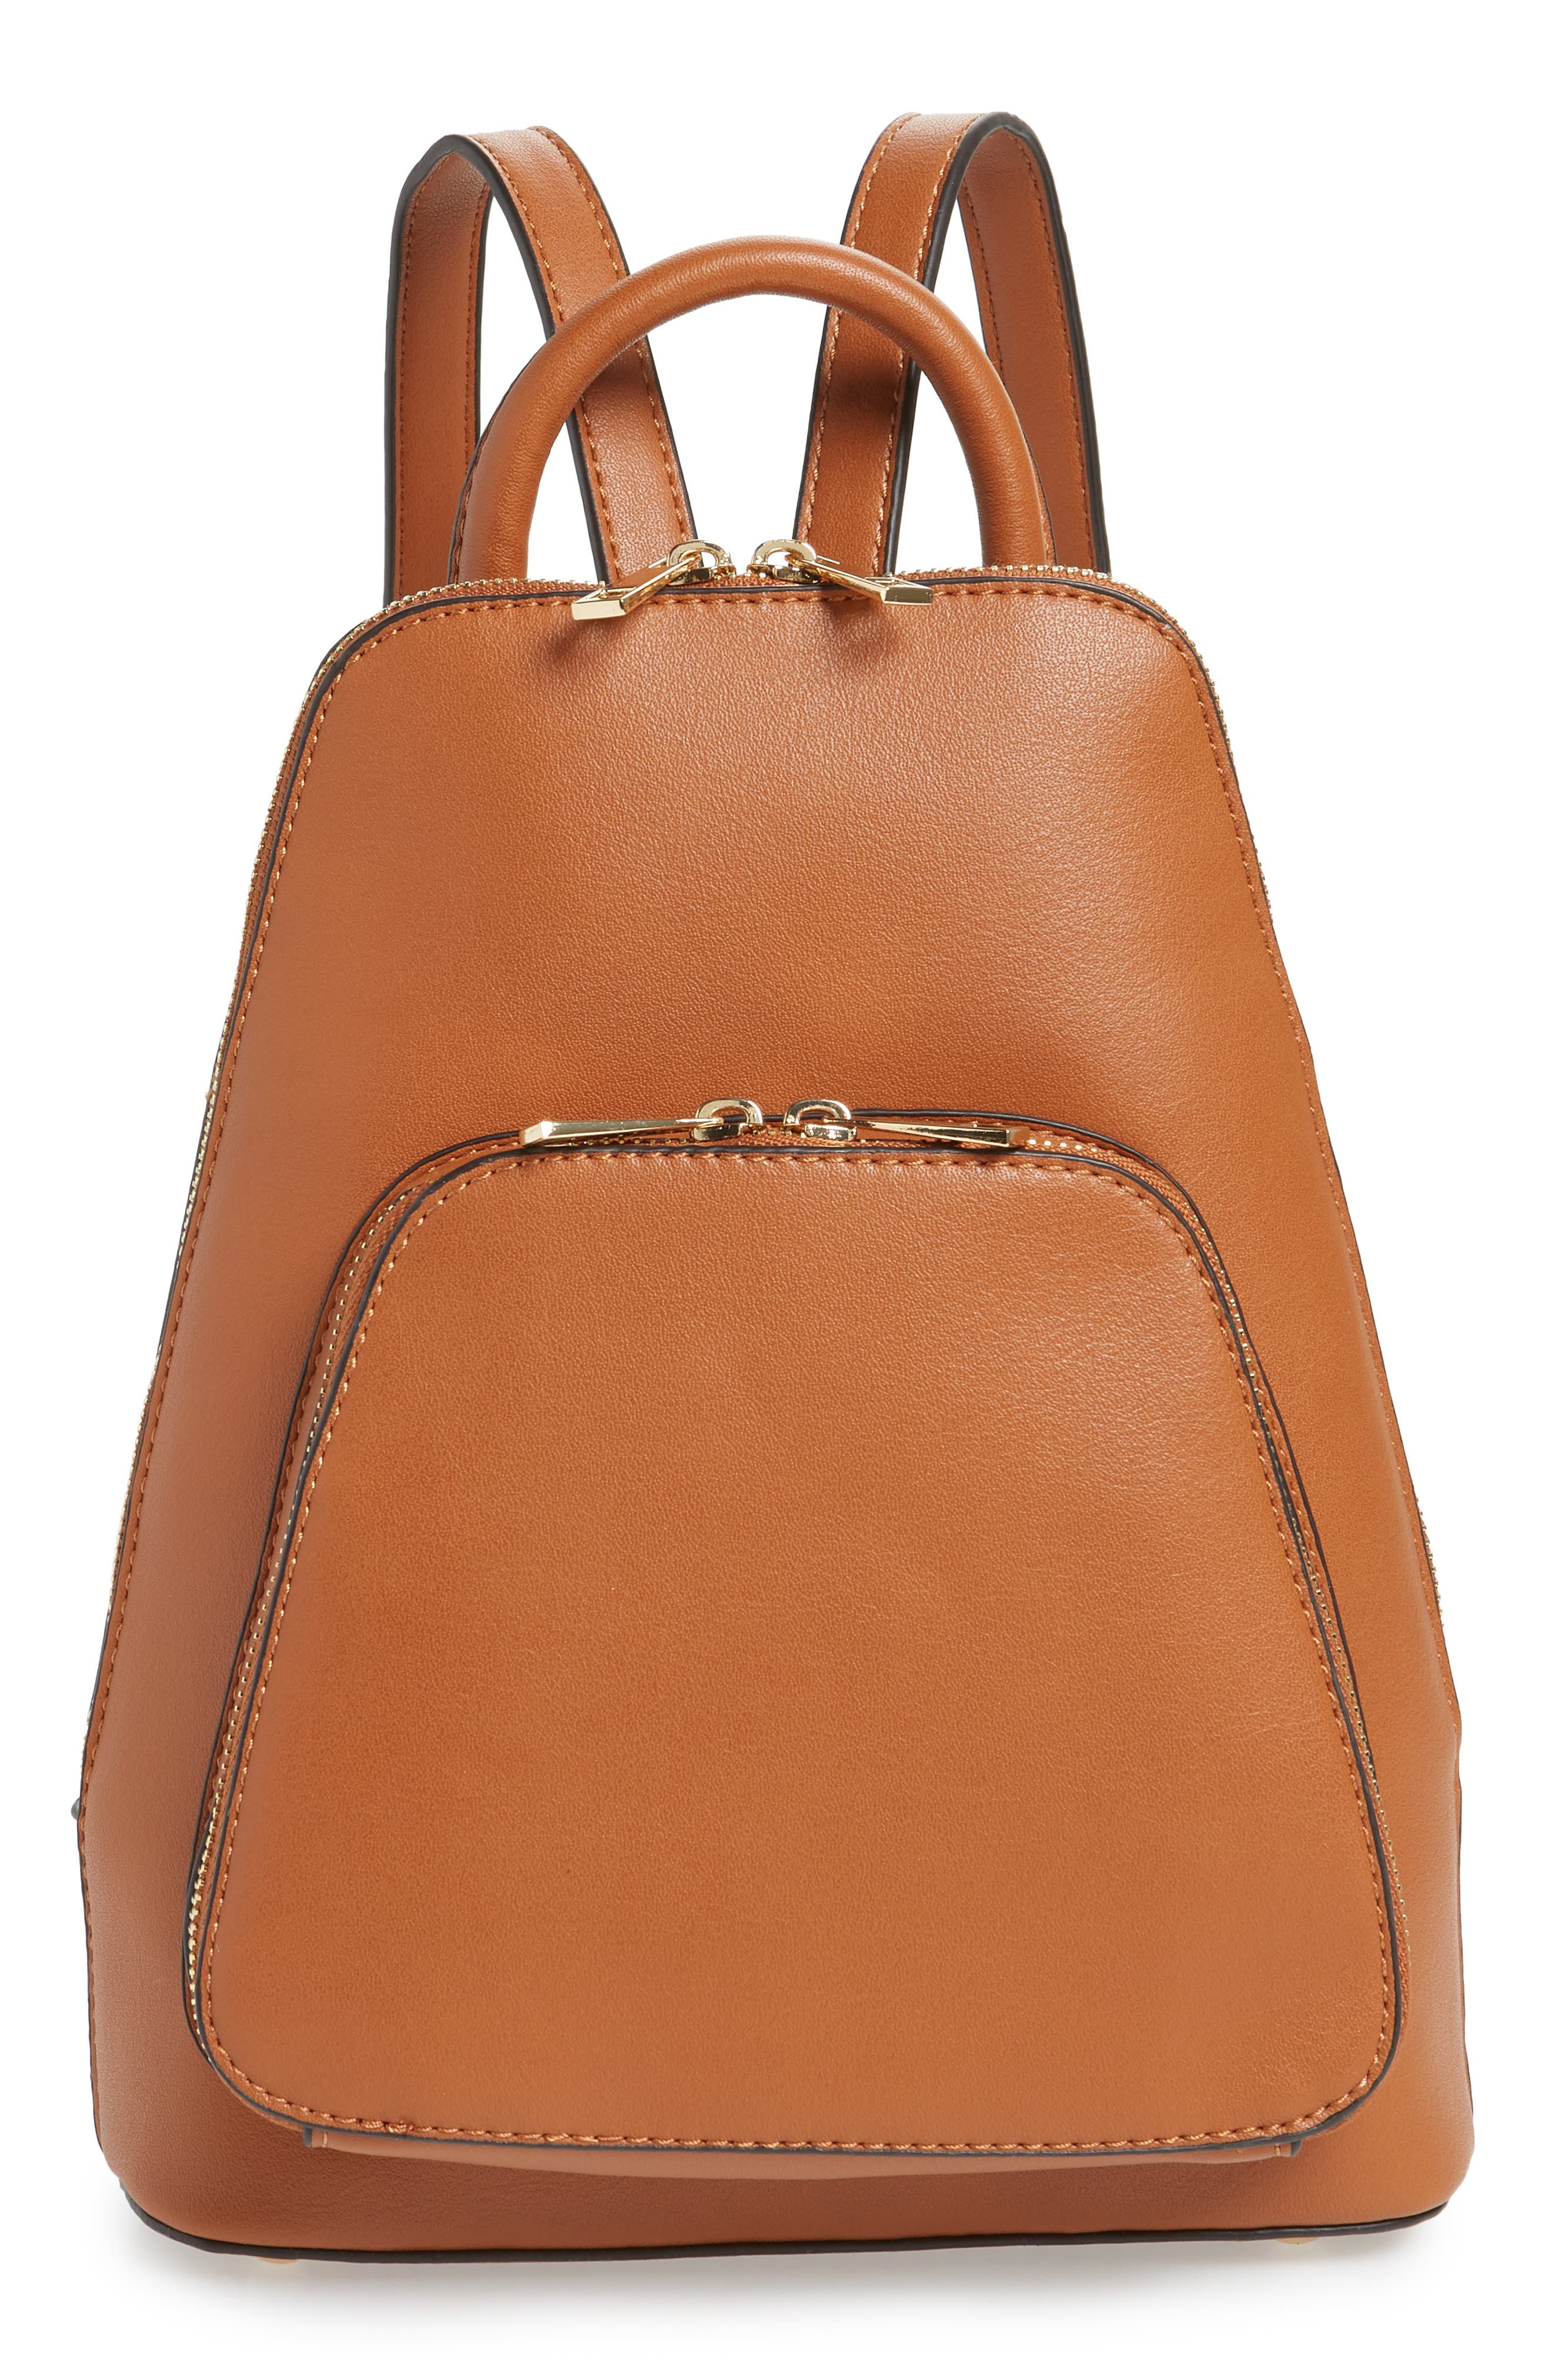 SOLE SOCIETY Aushan Faux Leather Backpack, Main, color, COGNAC